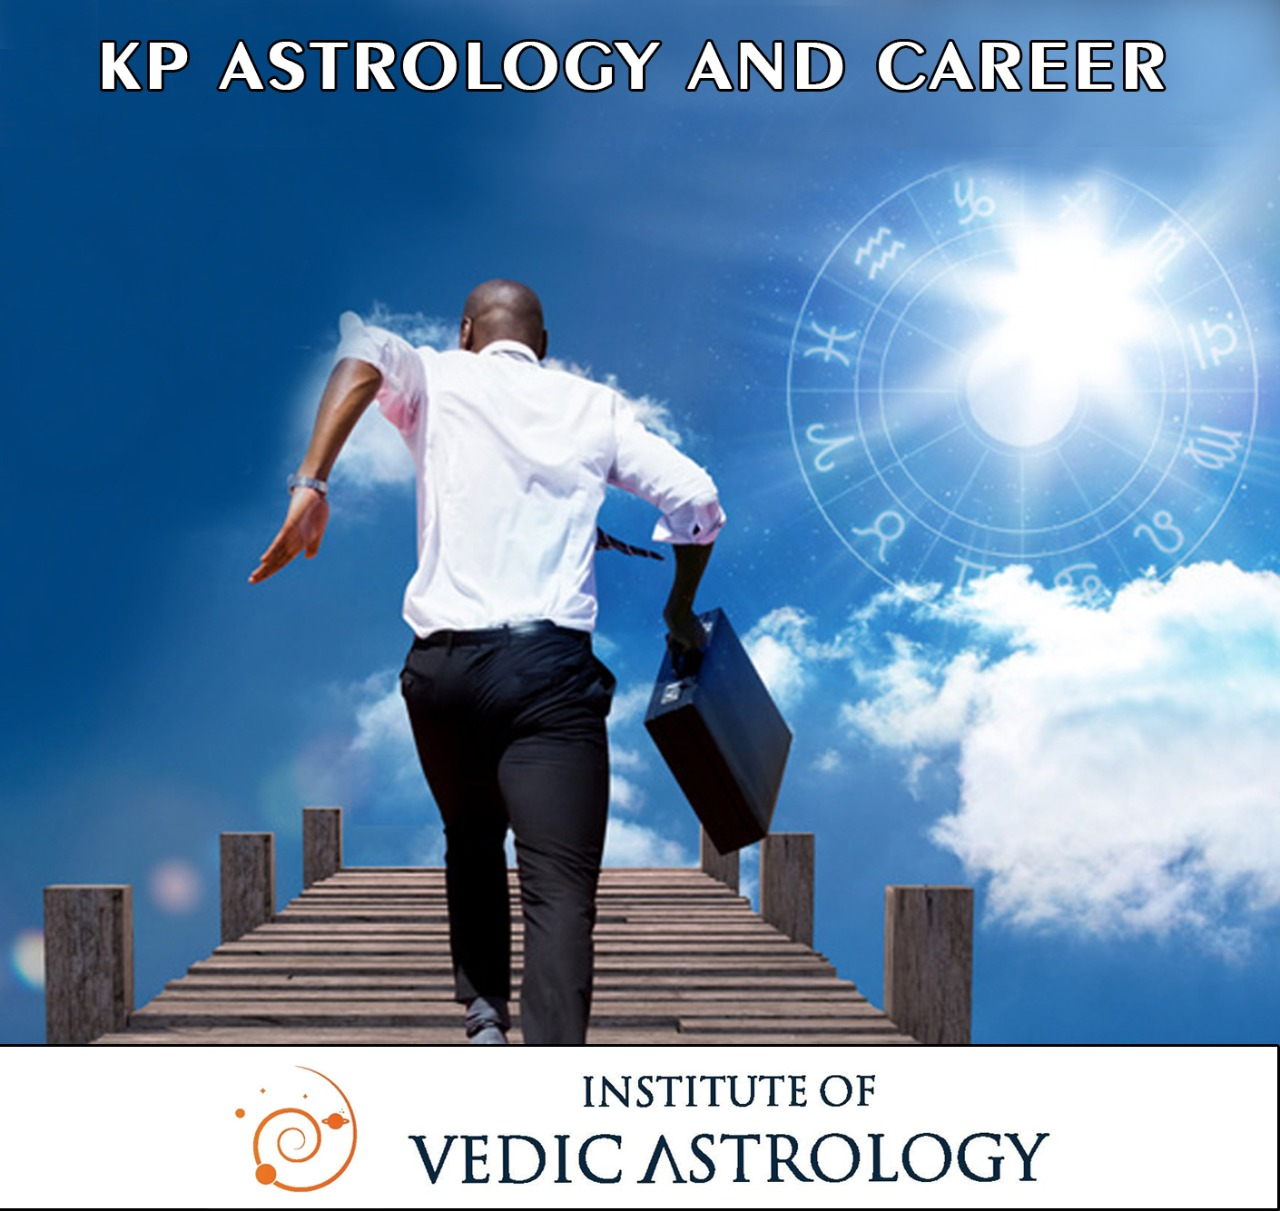 KP Astrology and Career